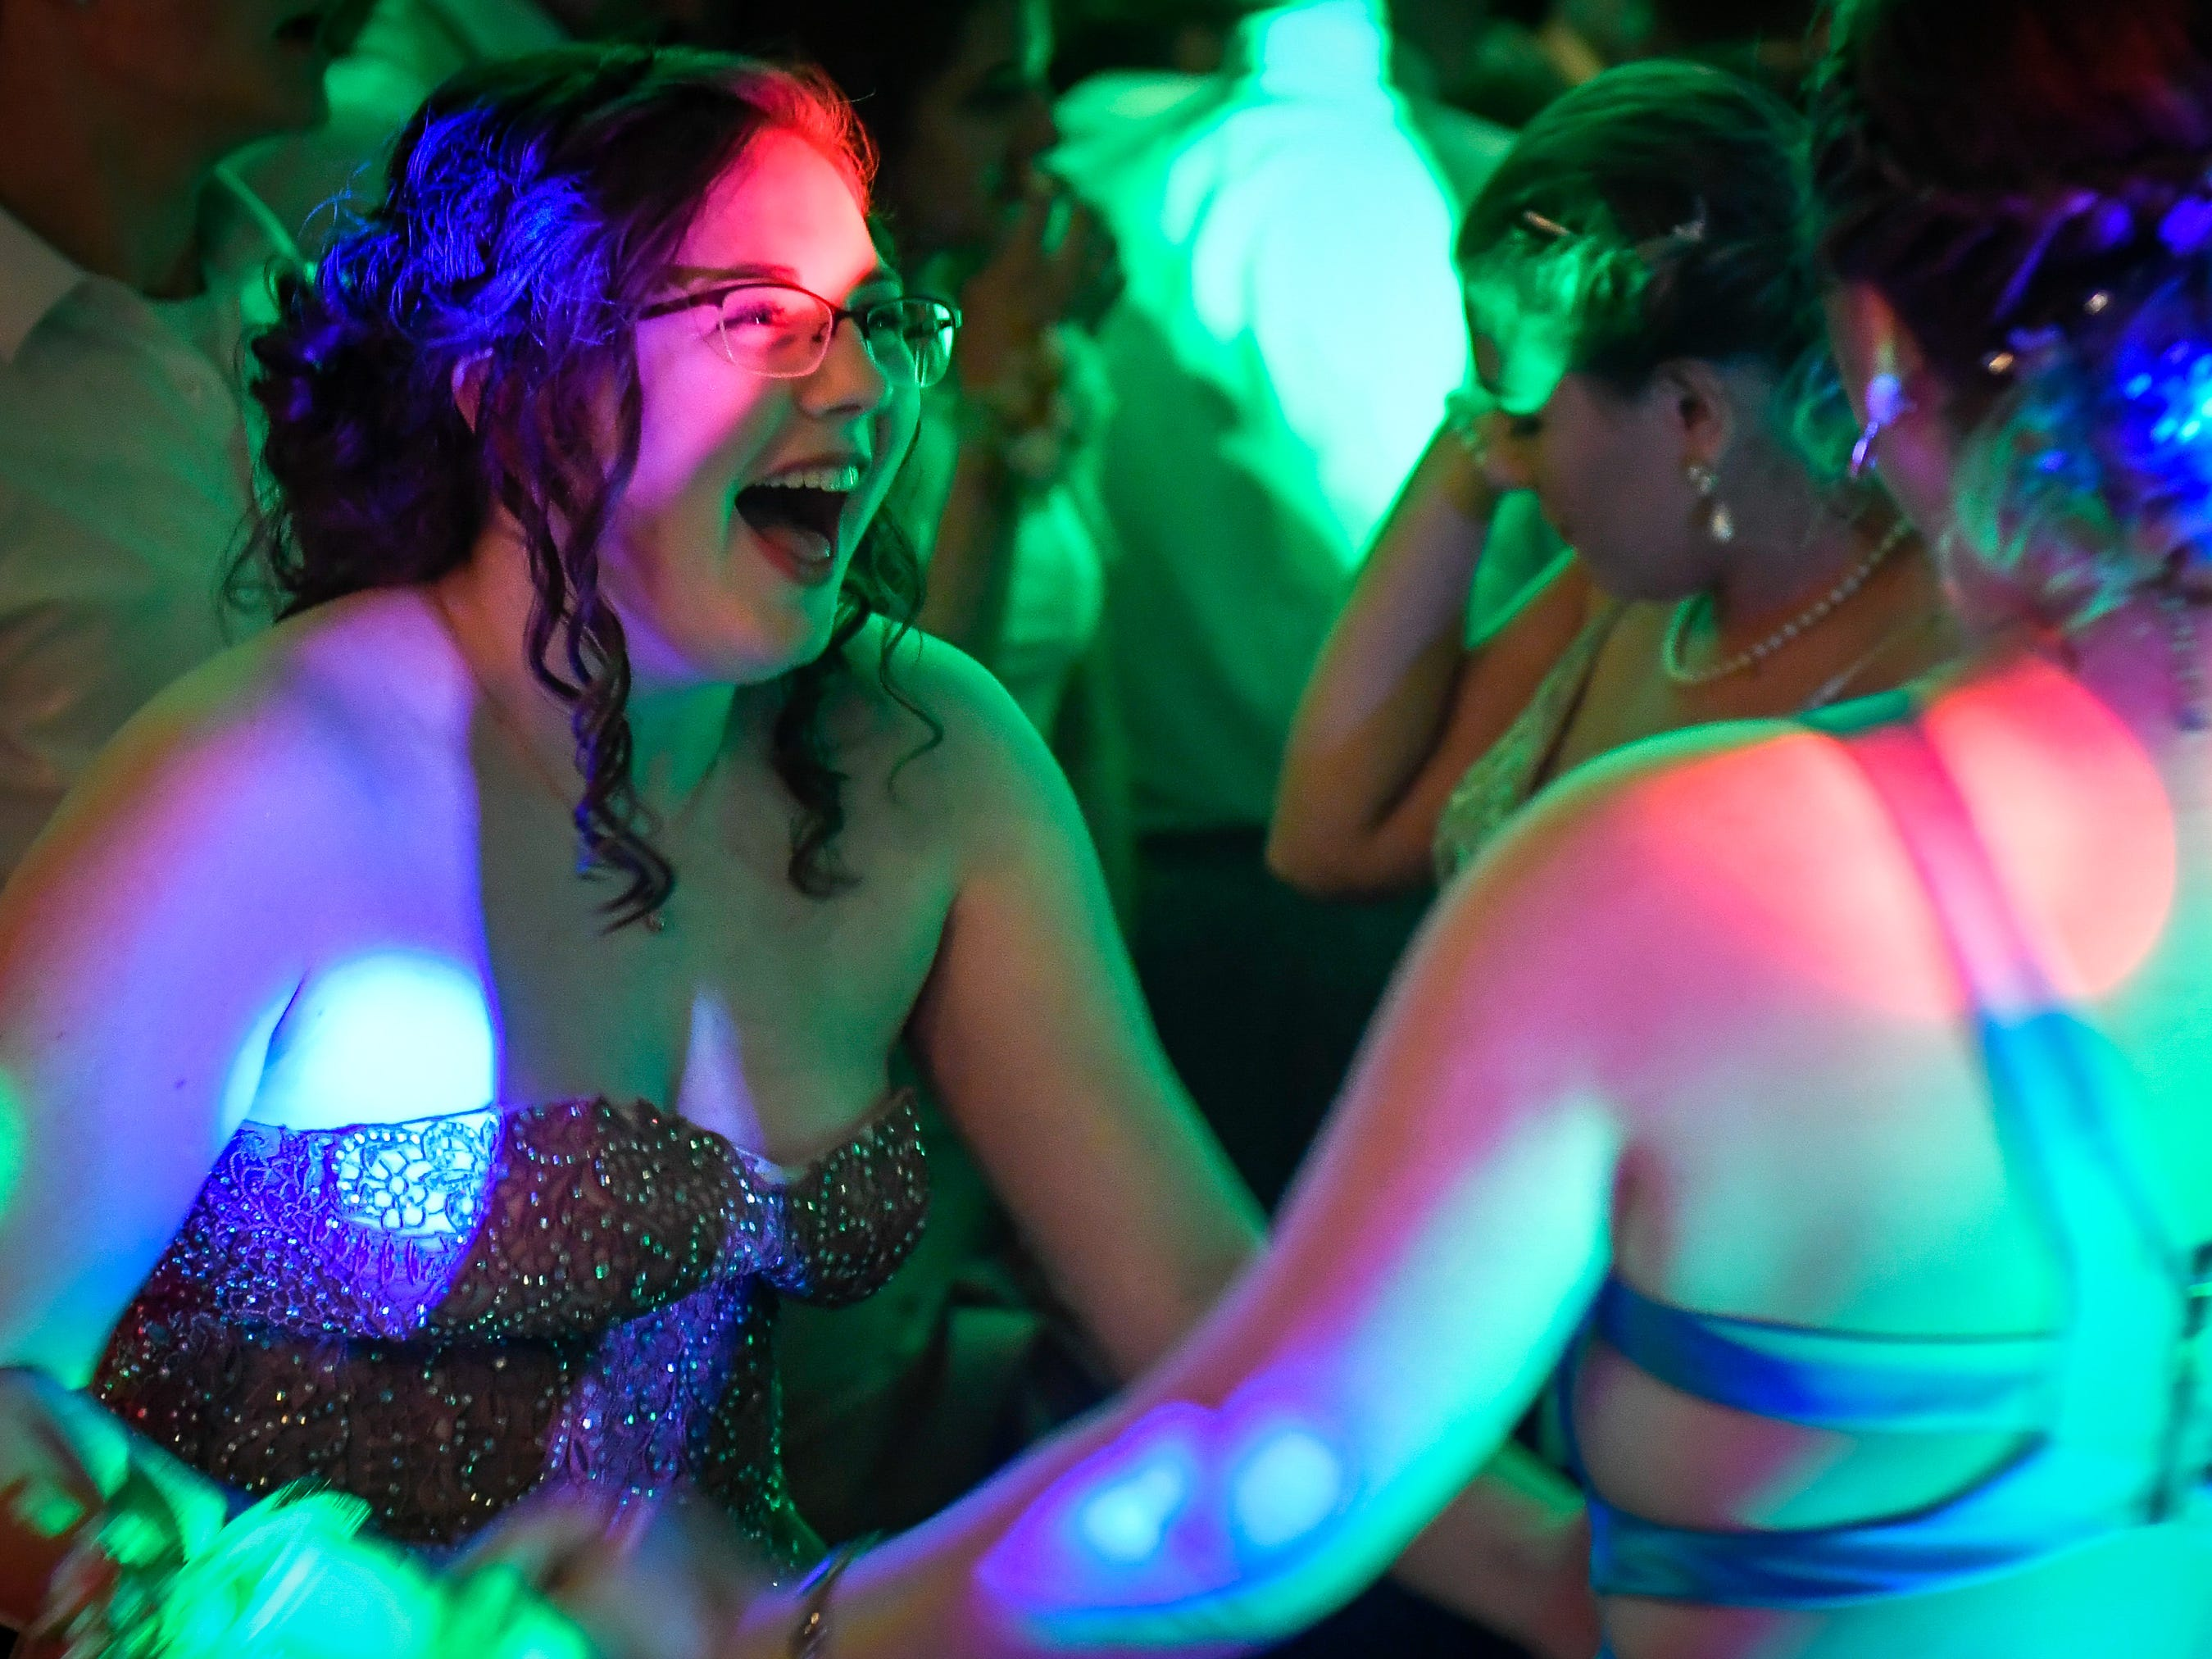 Guillienne Boyd dances with Jade Young at the North High School Prom held at the Old Post Office in downtown Evansville Saturday, April 13, 2019.